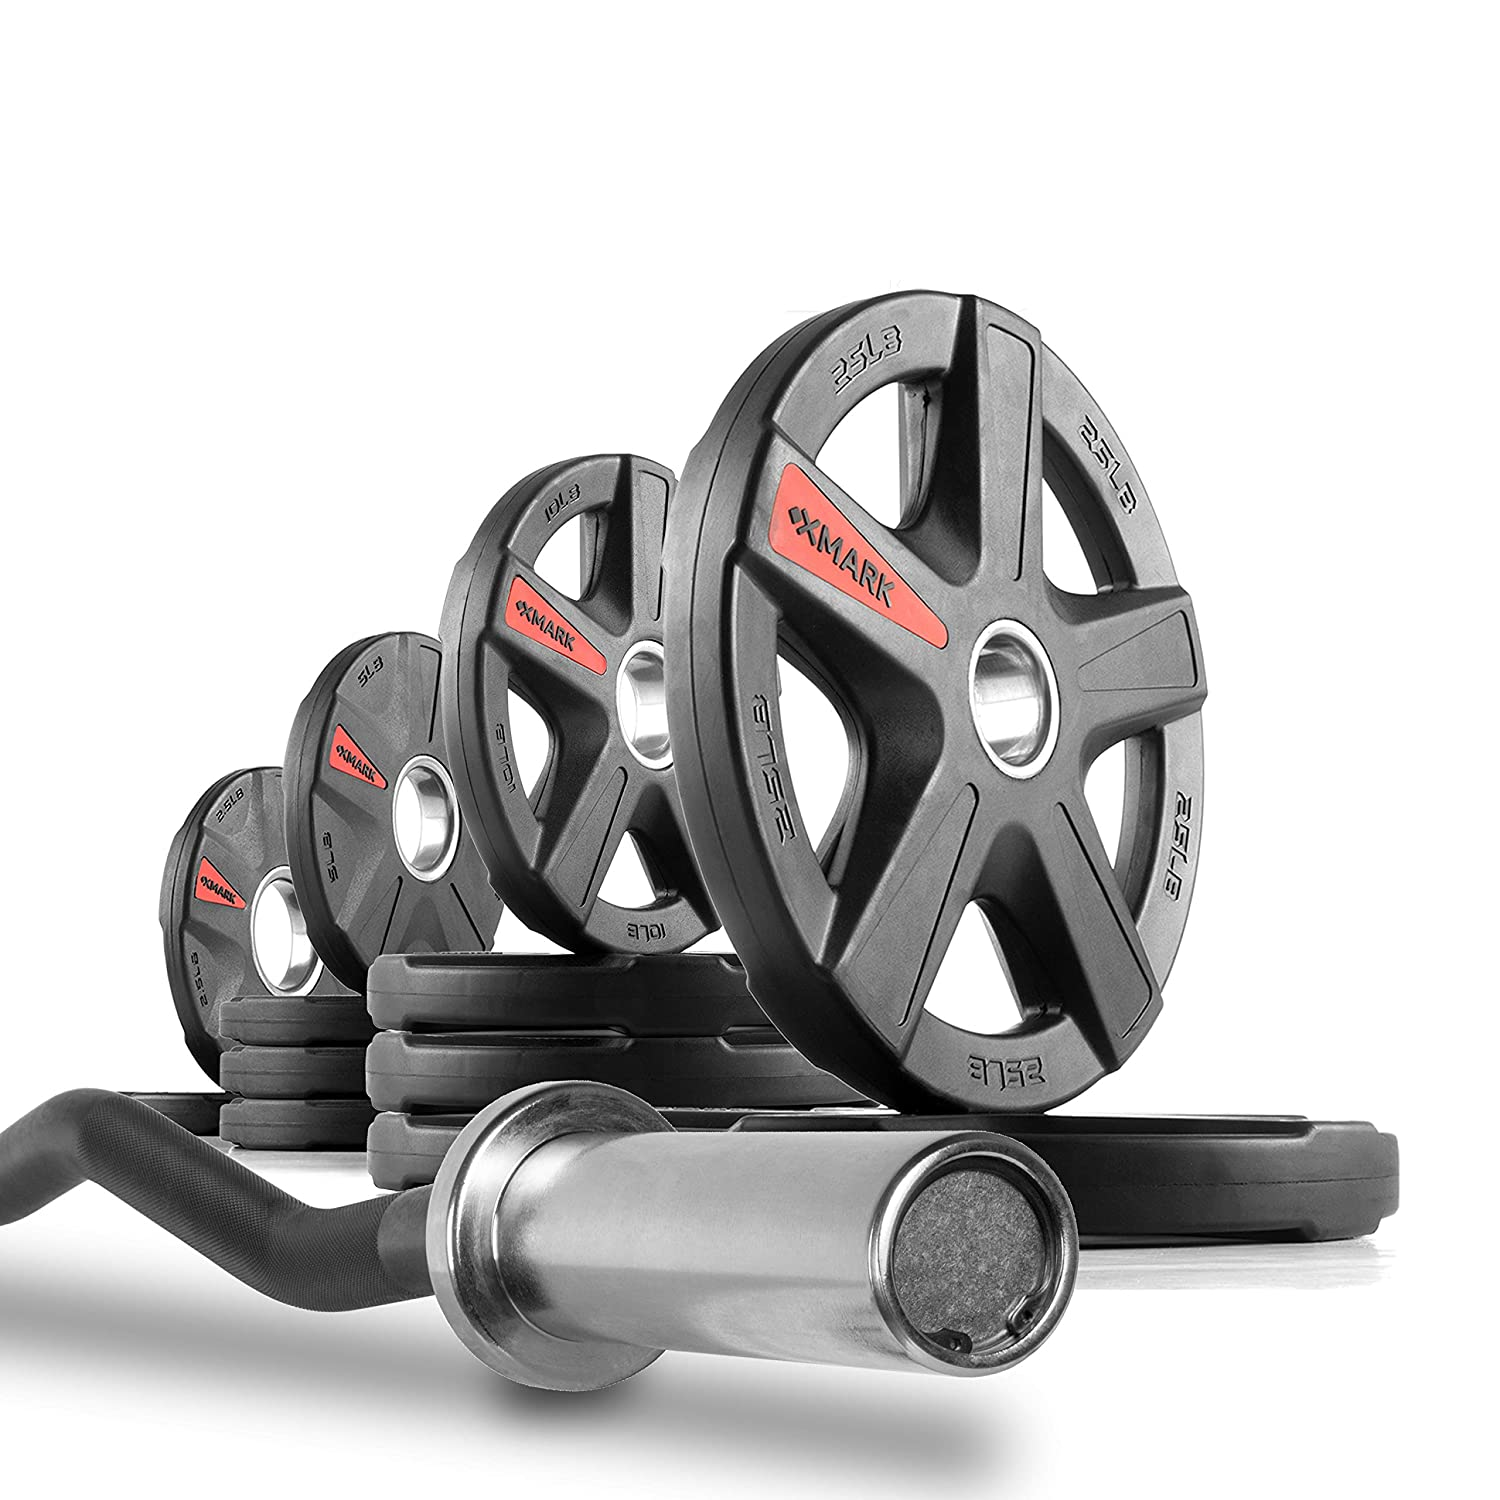 XMark Olympic EZ Curl Bar Brass Bushings With Optional TEXAS STAR, SIGNATURE or TRI-GRIP Olympic Plate Weight Sets, Use with Preacher Curl Bench, Utility Benches, Bicep Curl and Triceps Extension